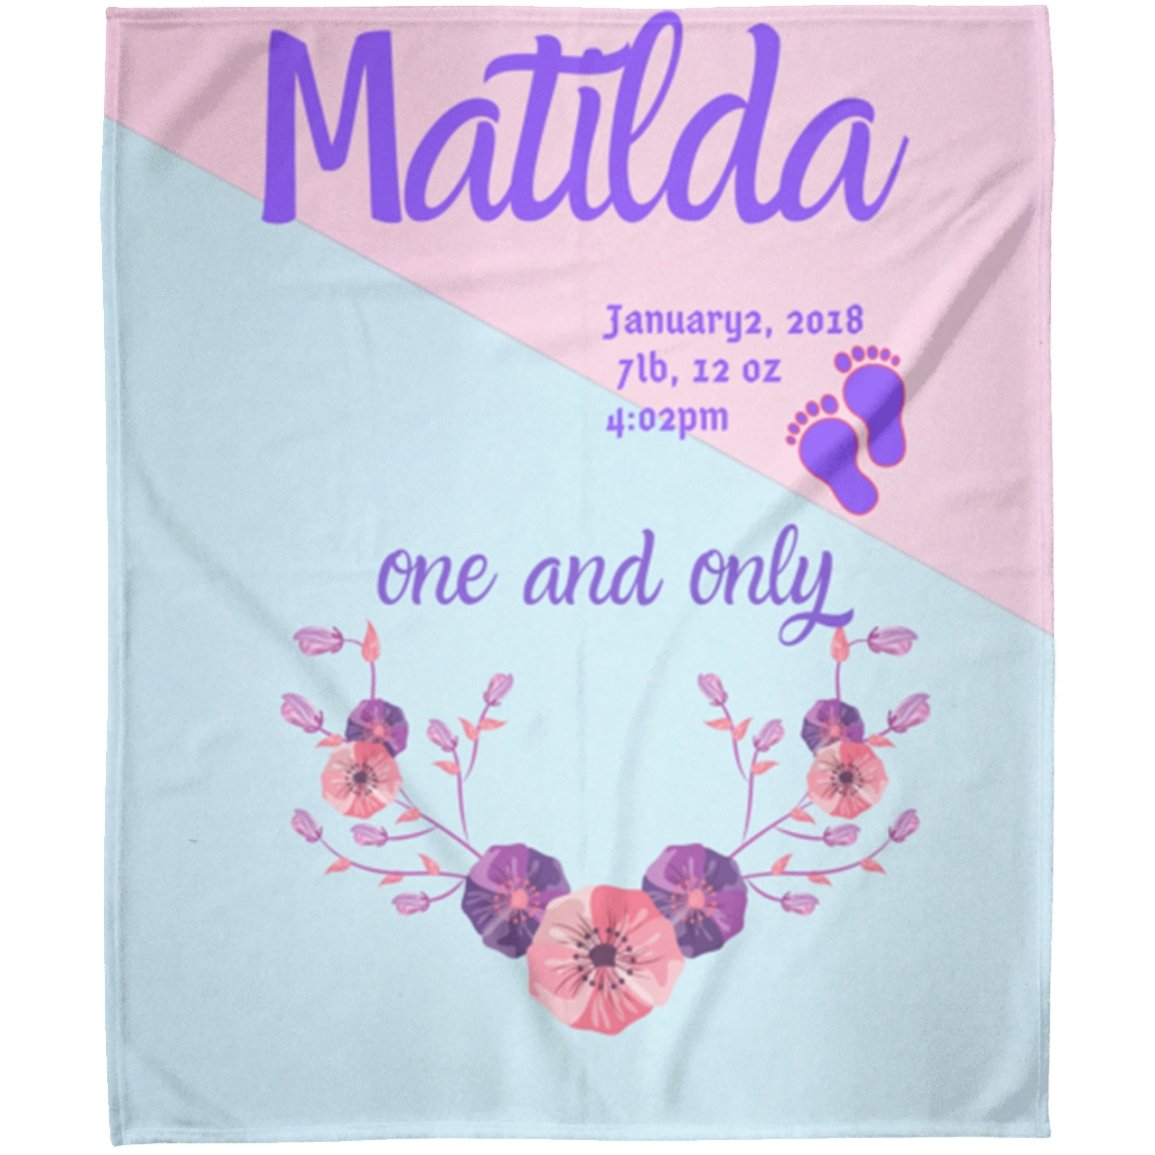 Blankets Matilda Personalized Premium Arctic Fleece Blanket - ZERO TO THREE CLUB Blankets